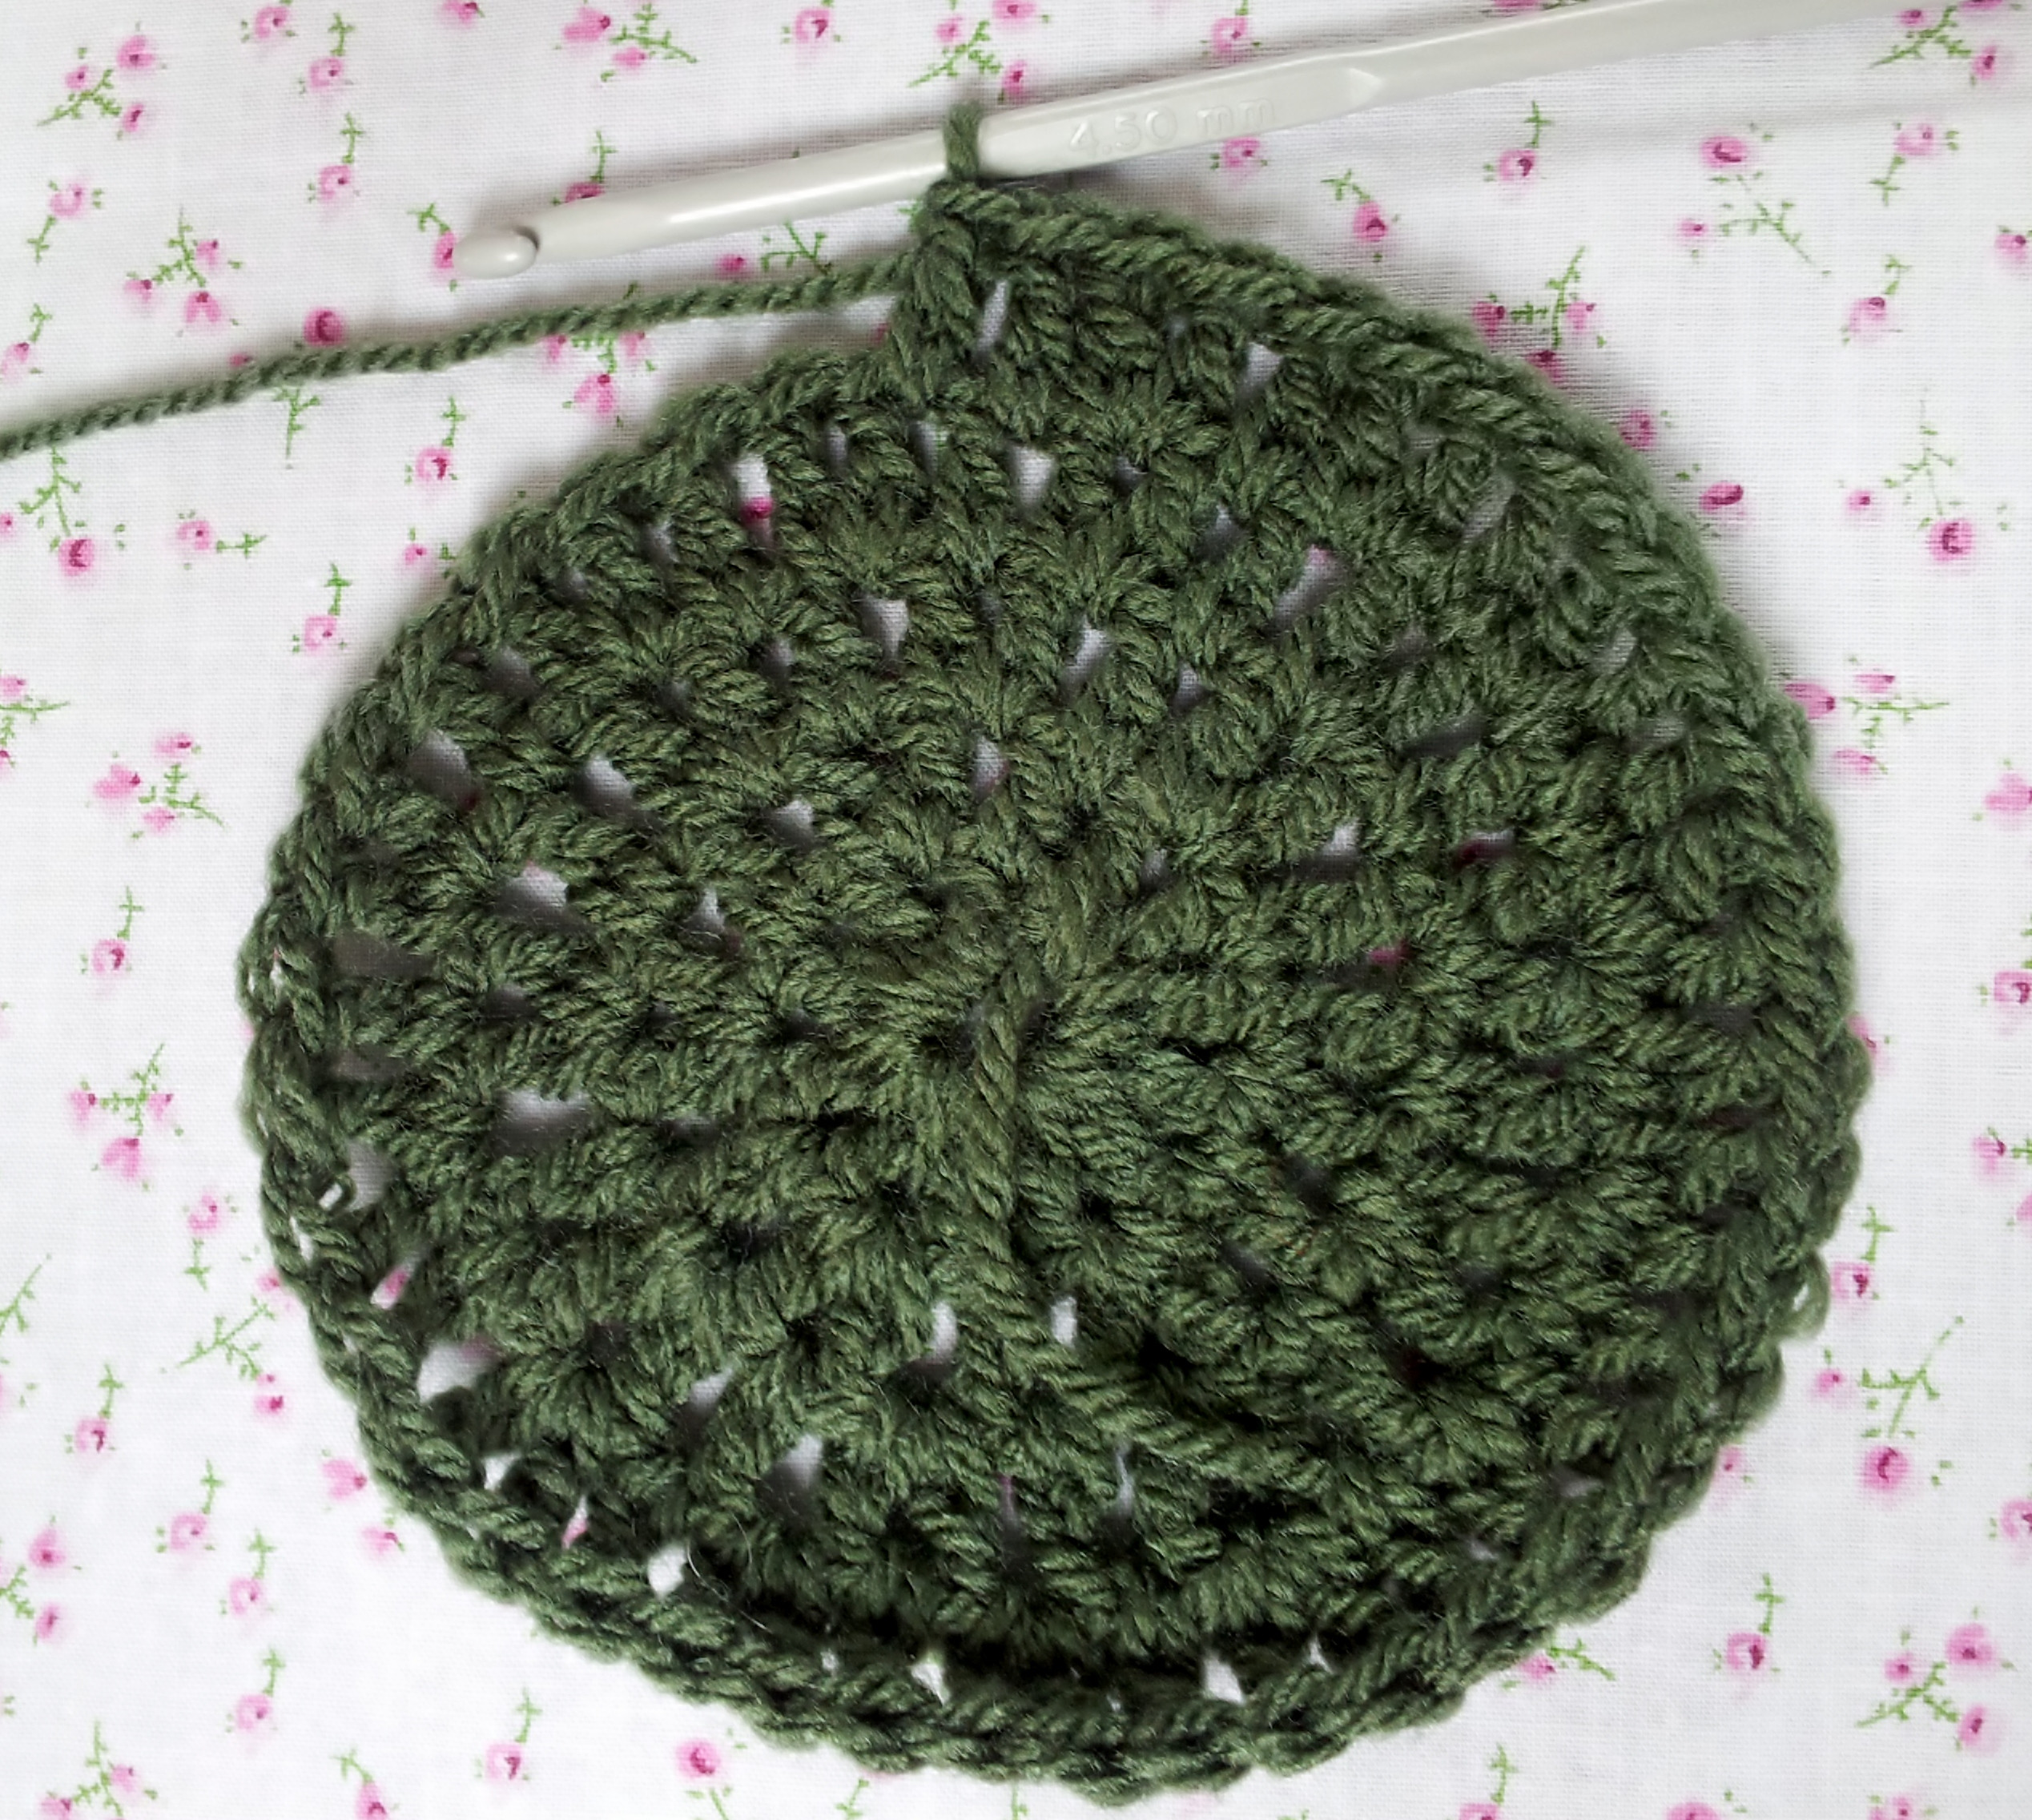 Crochet In the Round Unique How to Make A Simple Crochet Hat – Free Pattern Of Marvelous 44 Photos Crochet In the Round